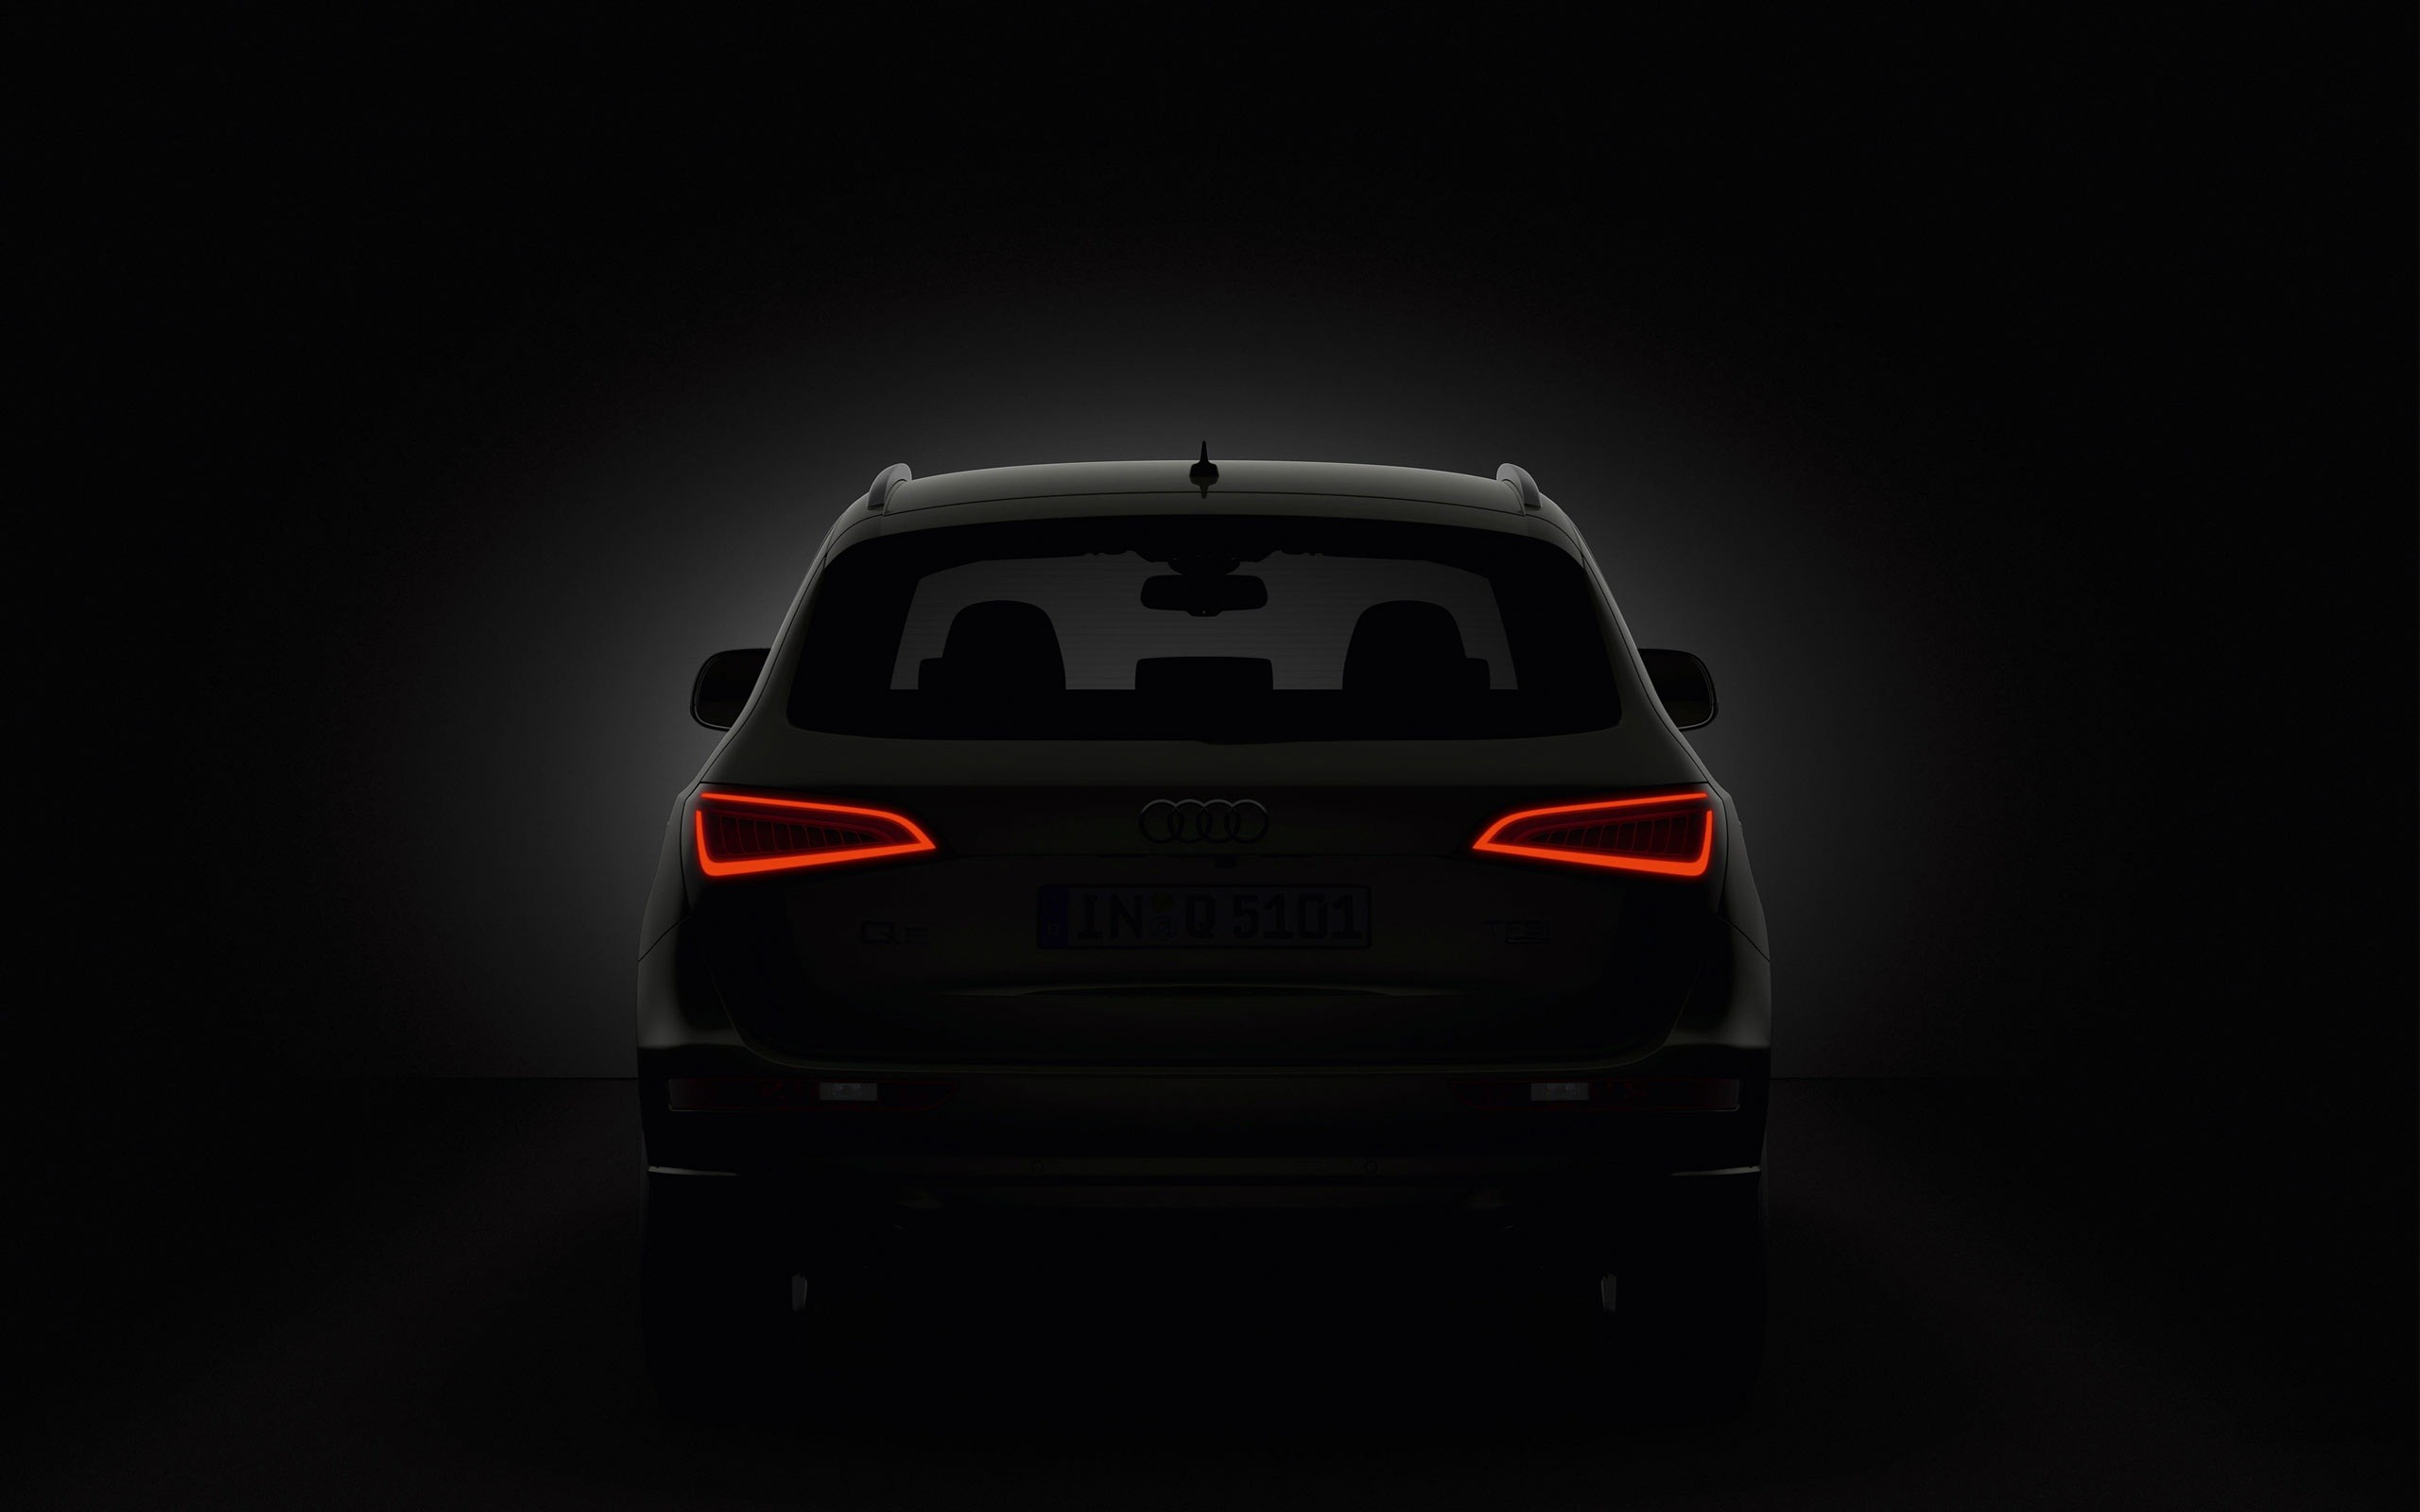 audi q5 taillights wallpaper 66020